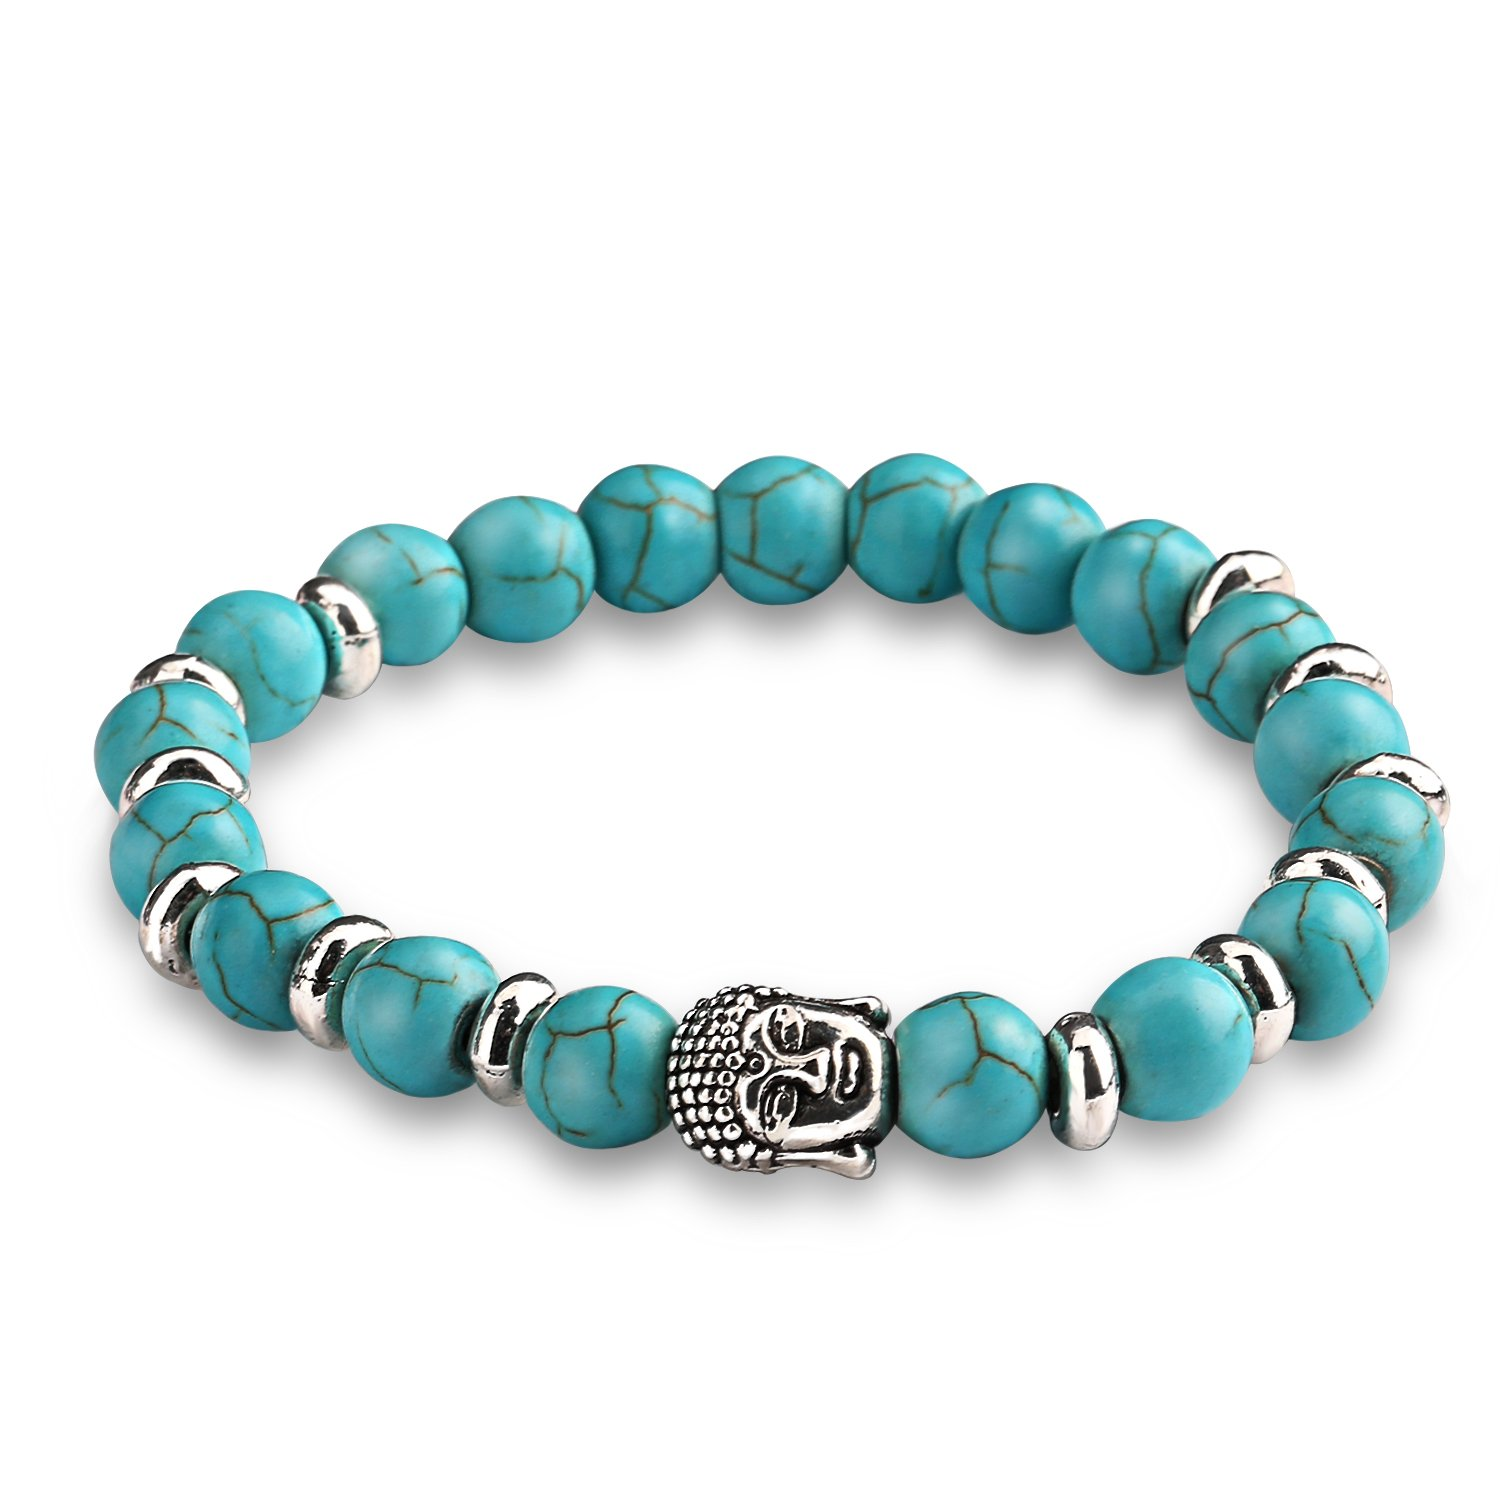 Energy Beads Bracelet, UHIBROS Lava Rock Turquoise Natural Agate Beaded Stretch Bracelet With Buddha Head Gold, Silver